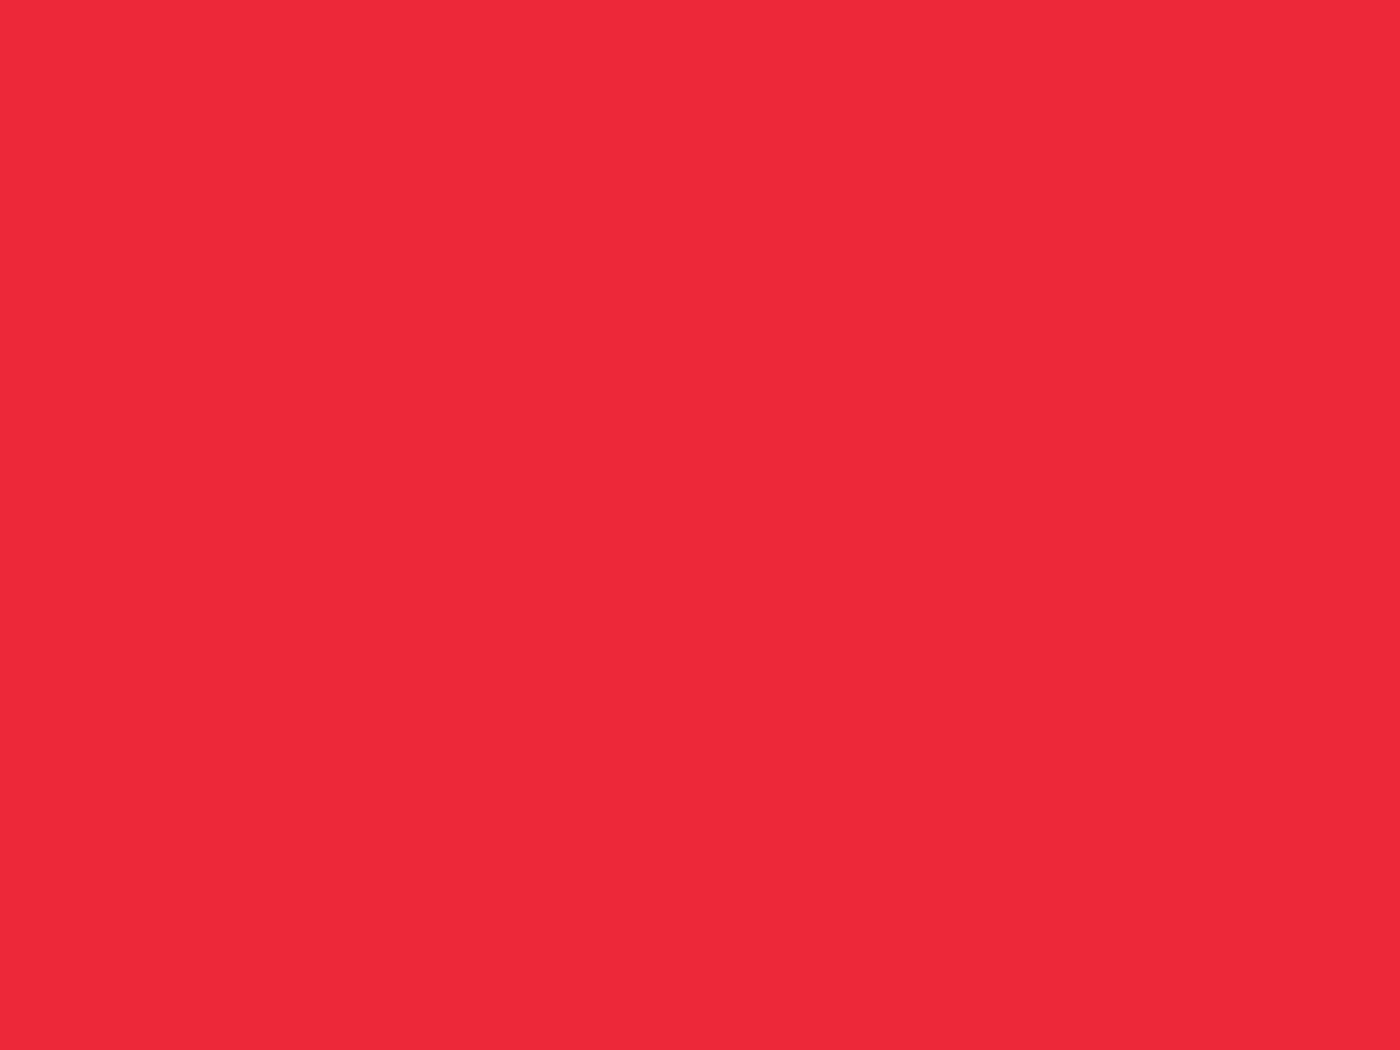 1400x1050 Imperial Red Solid Color Background